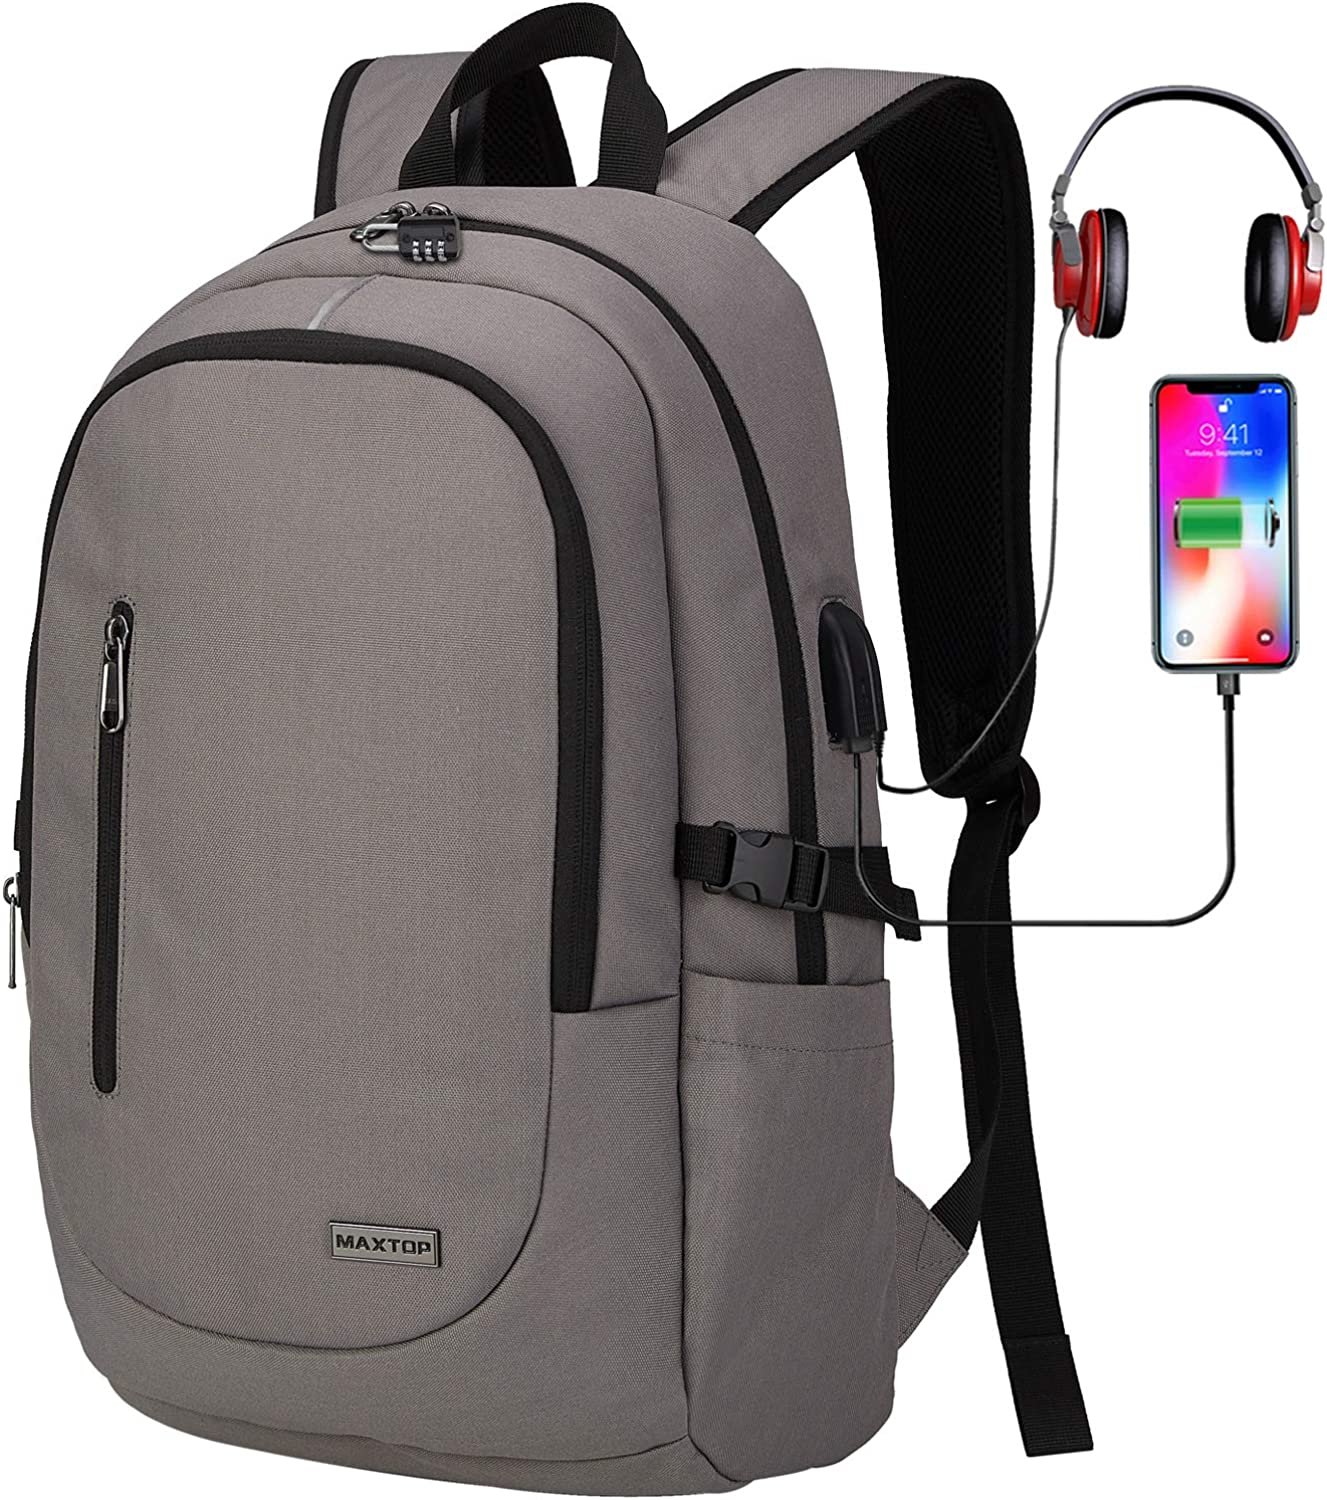 Laptop Backpack with USB Port Anti-Theft College Bookbag School Business Travel Computer Backpack Fits up to 15.6-inch